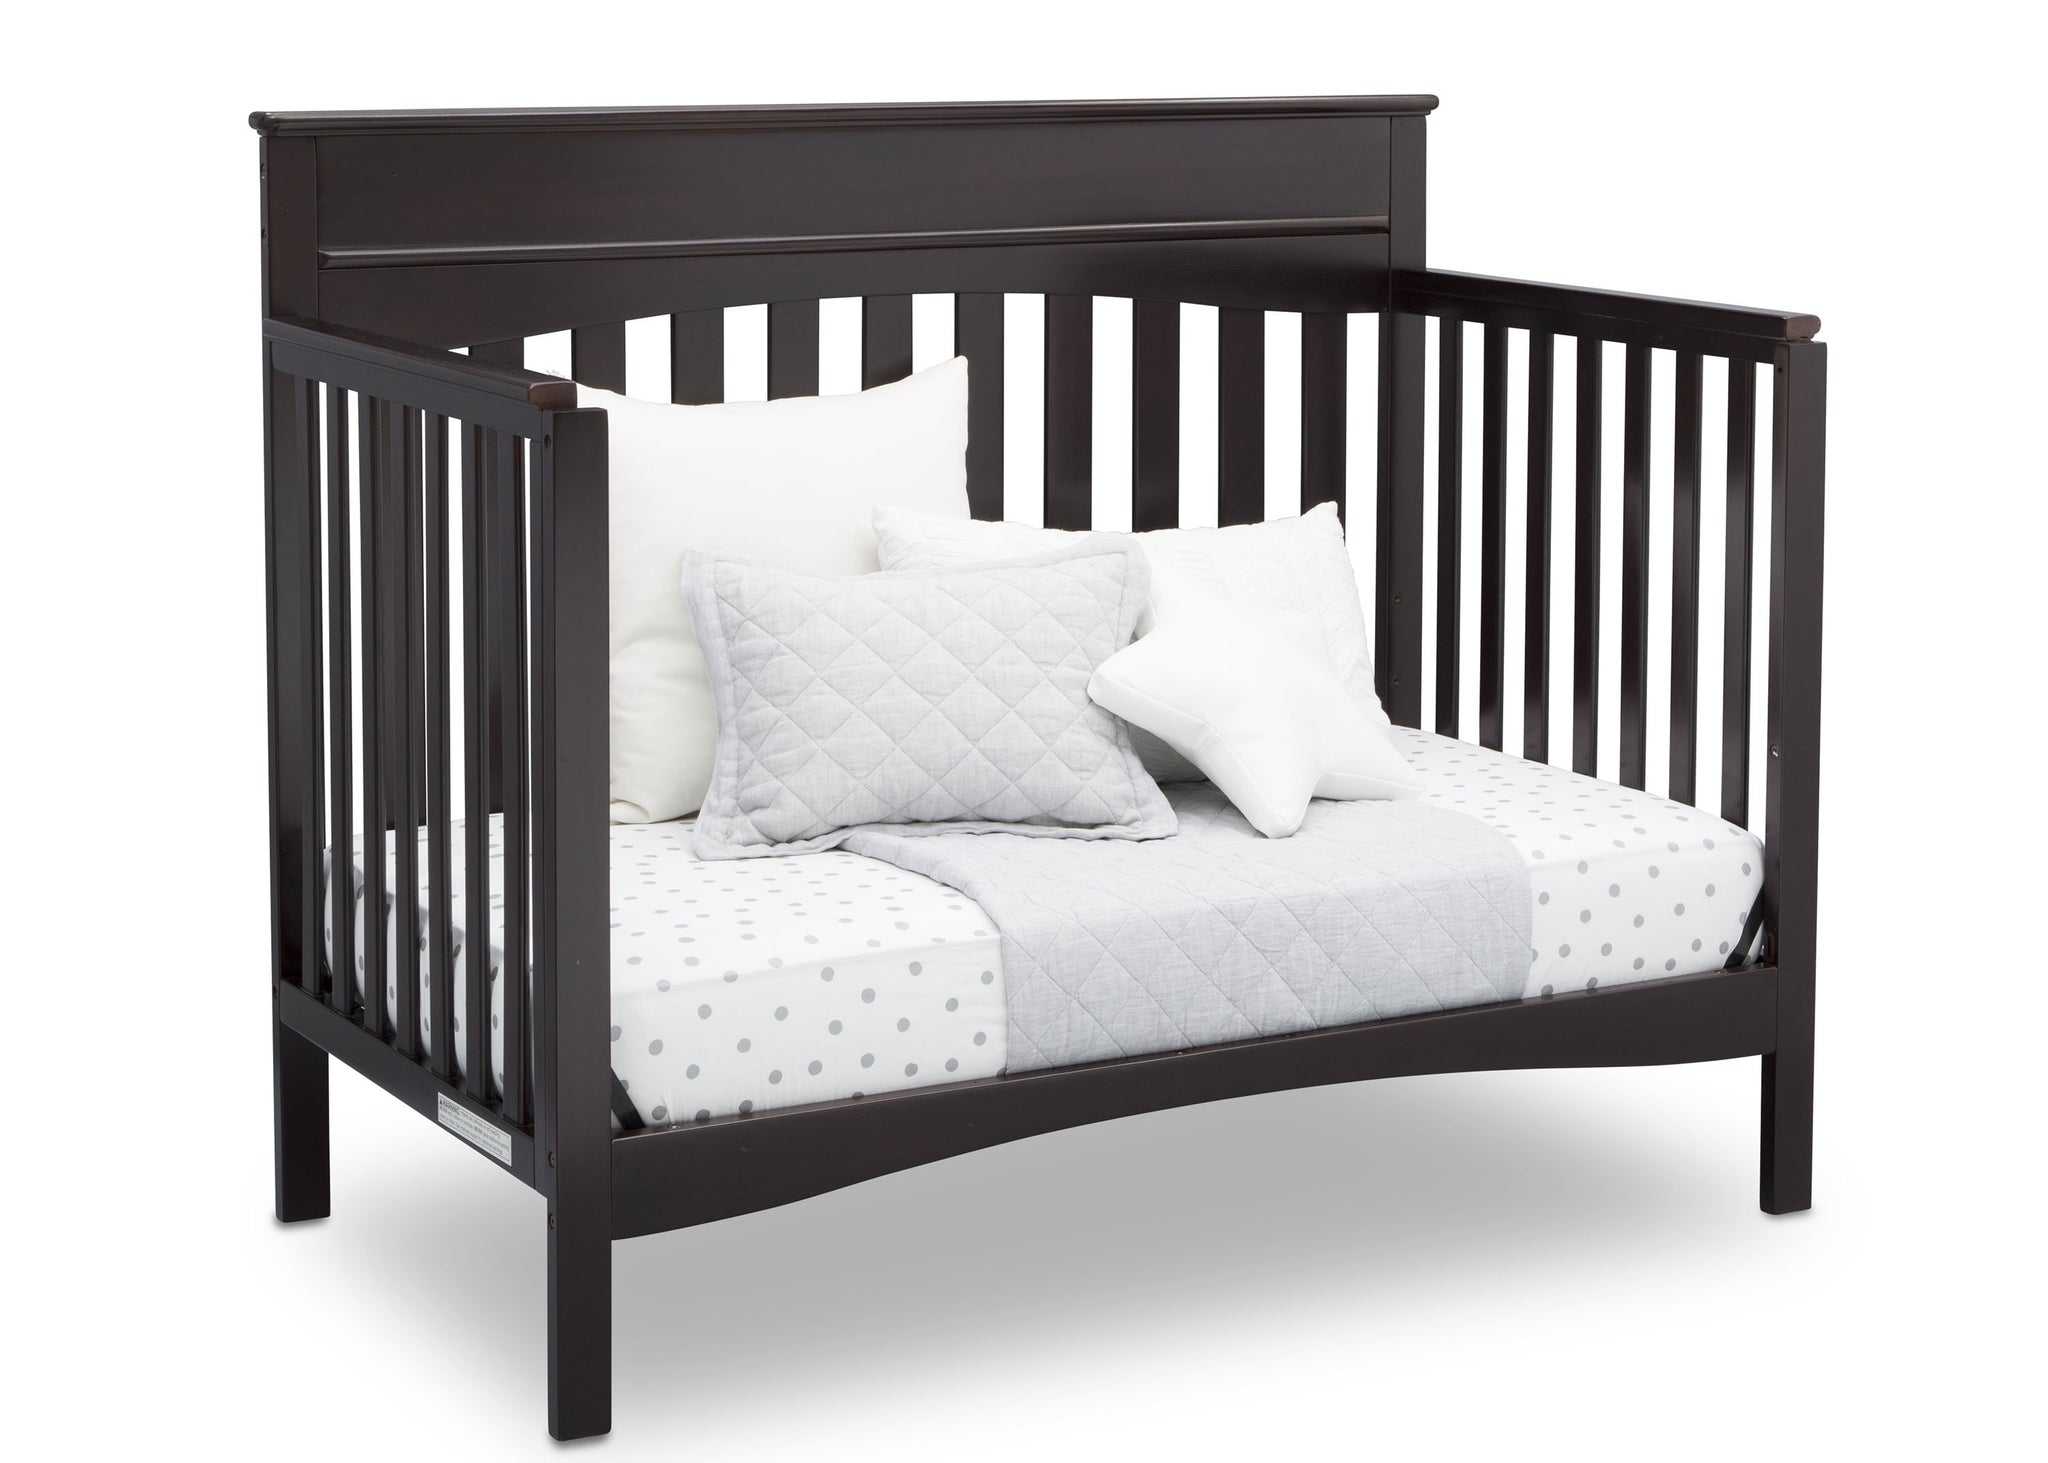 Delta Children Dark Chocolate (207) Skylar 4-in-1 Convertible Crib (558150), Daybed, d3d